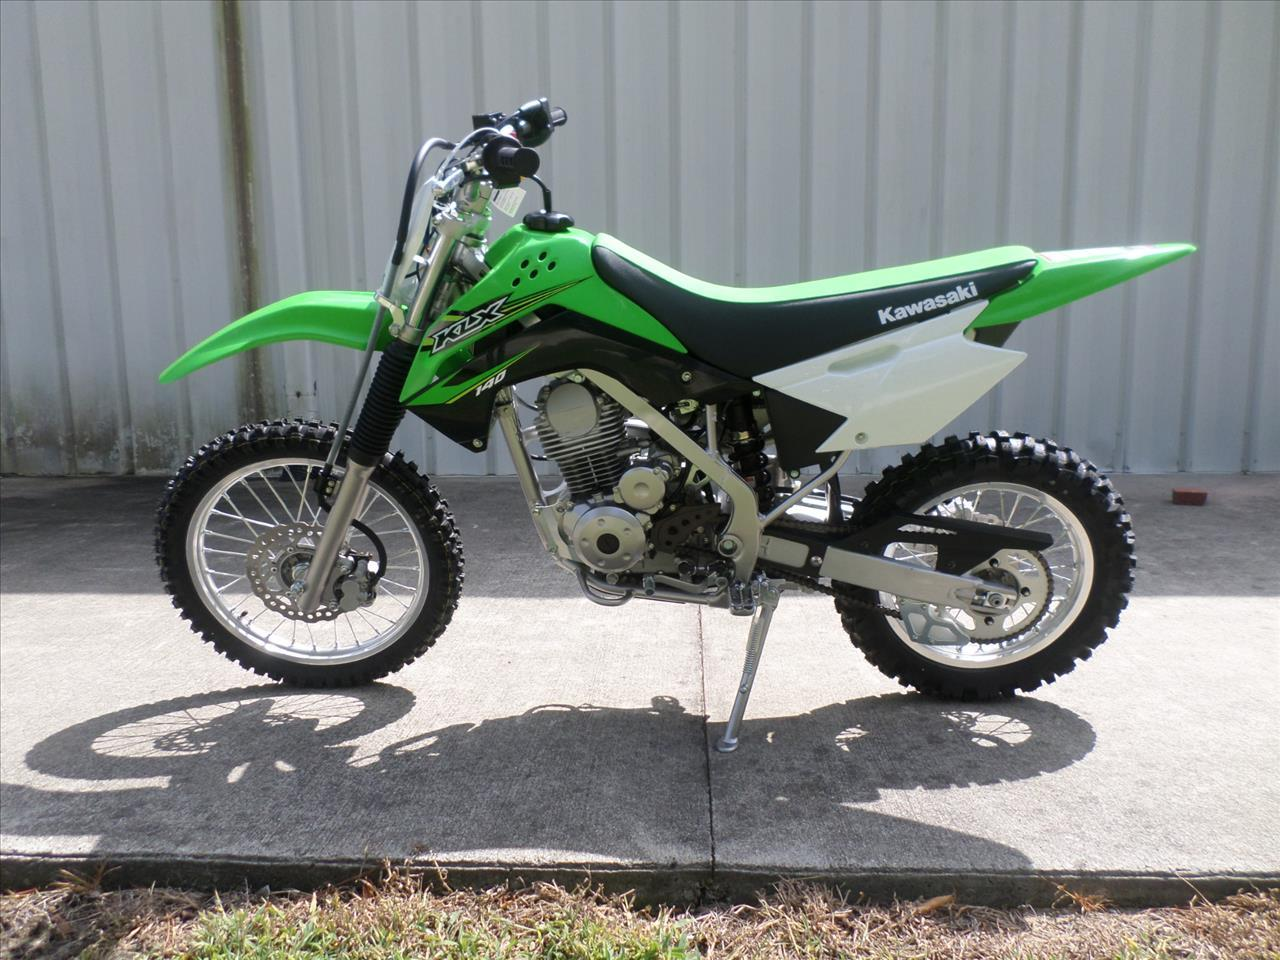 2017 Kawasaki KLX140 for sale at Vehicle Network, LLC - Ron Ayers Motorsports in Greenville NC